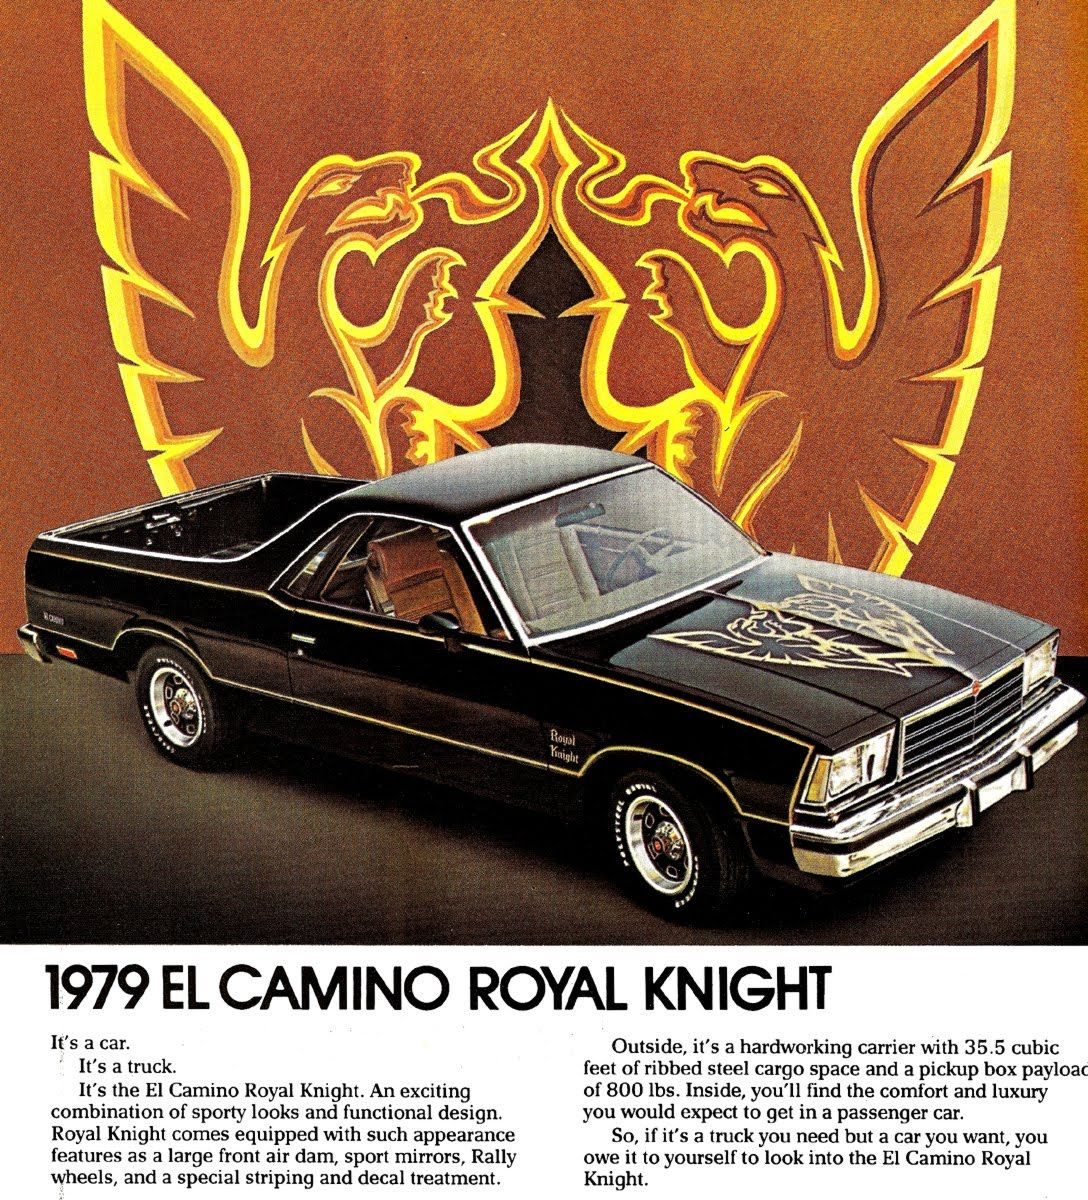 1982 Chevy EL Camino SS//Conquista//Royal Knight Brochure